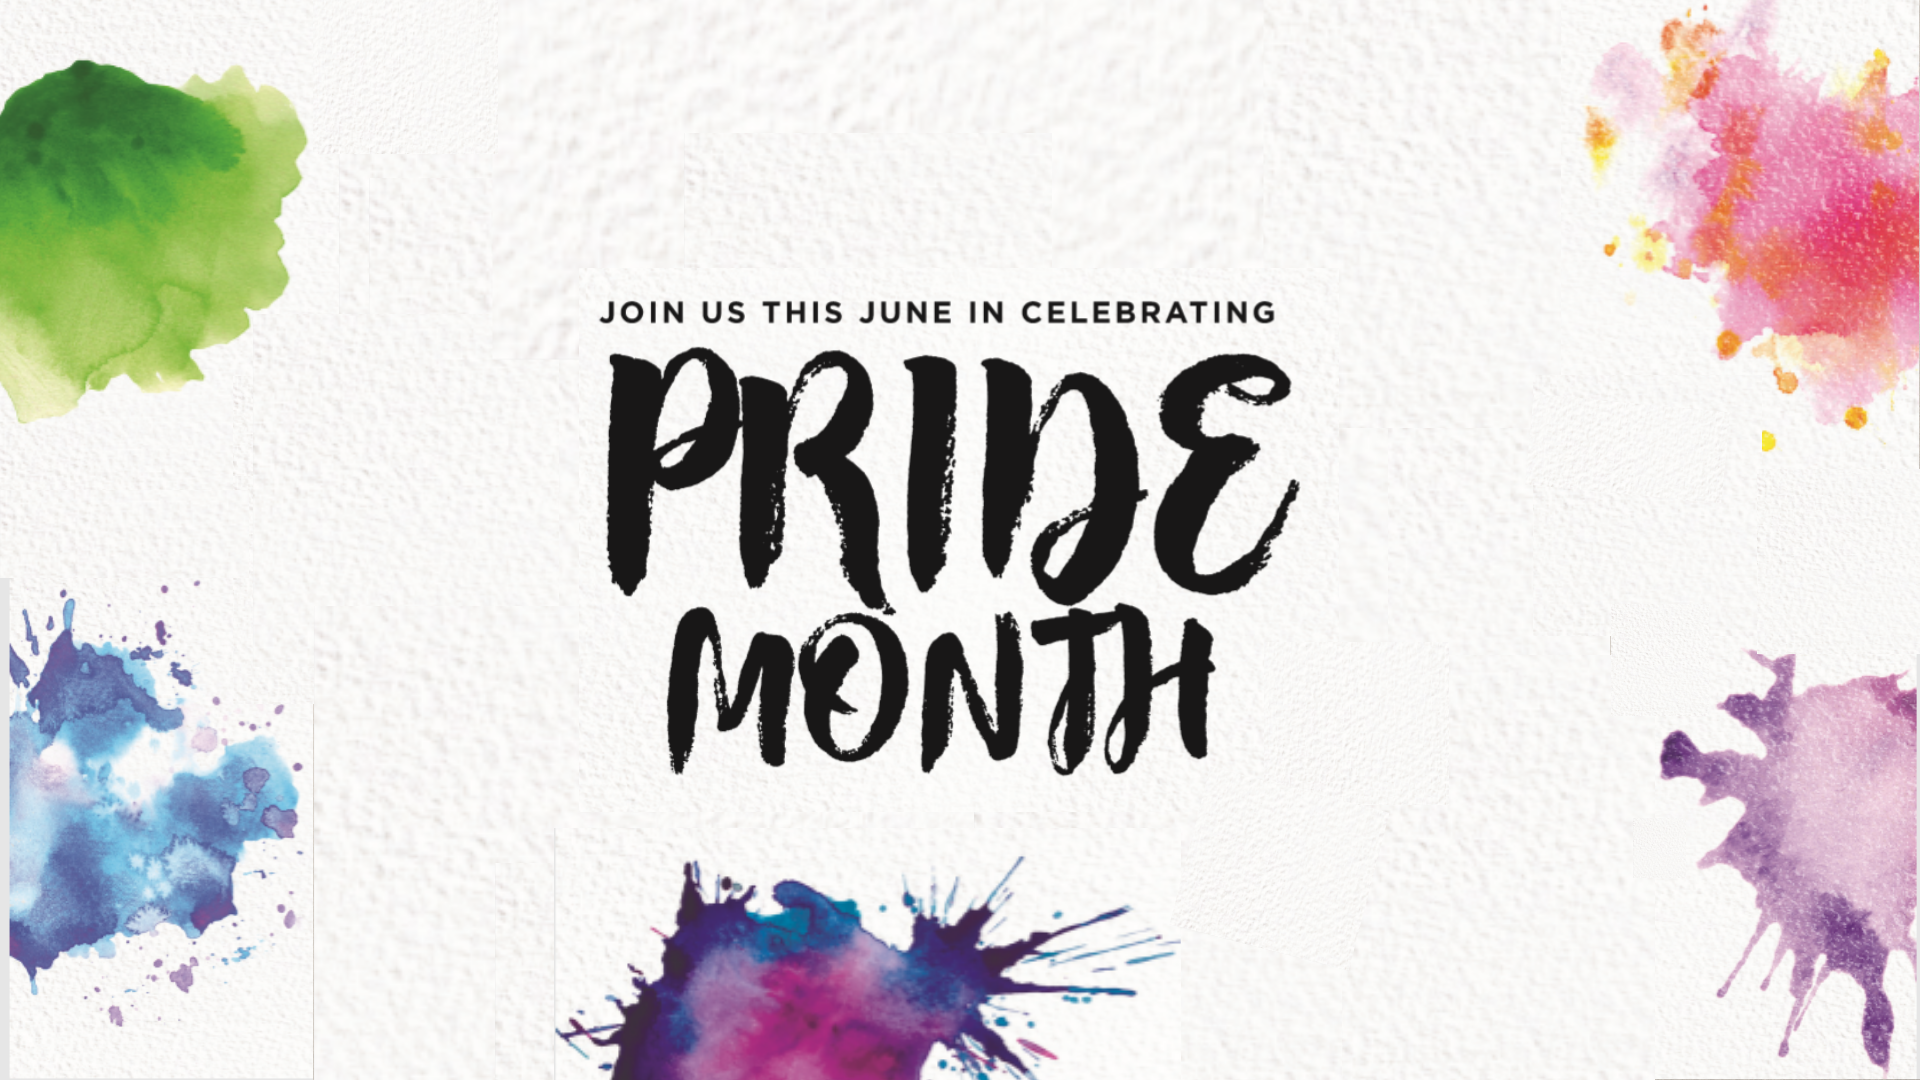 join-us-this-june-in-celebrating-pride-st-francis-de-sales-catholic-church-new-york.png